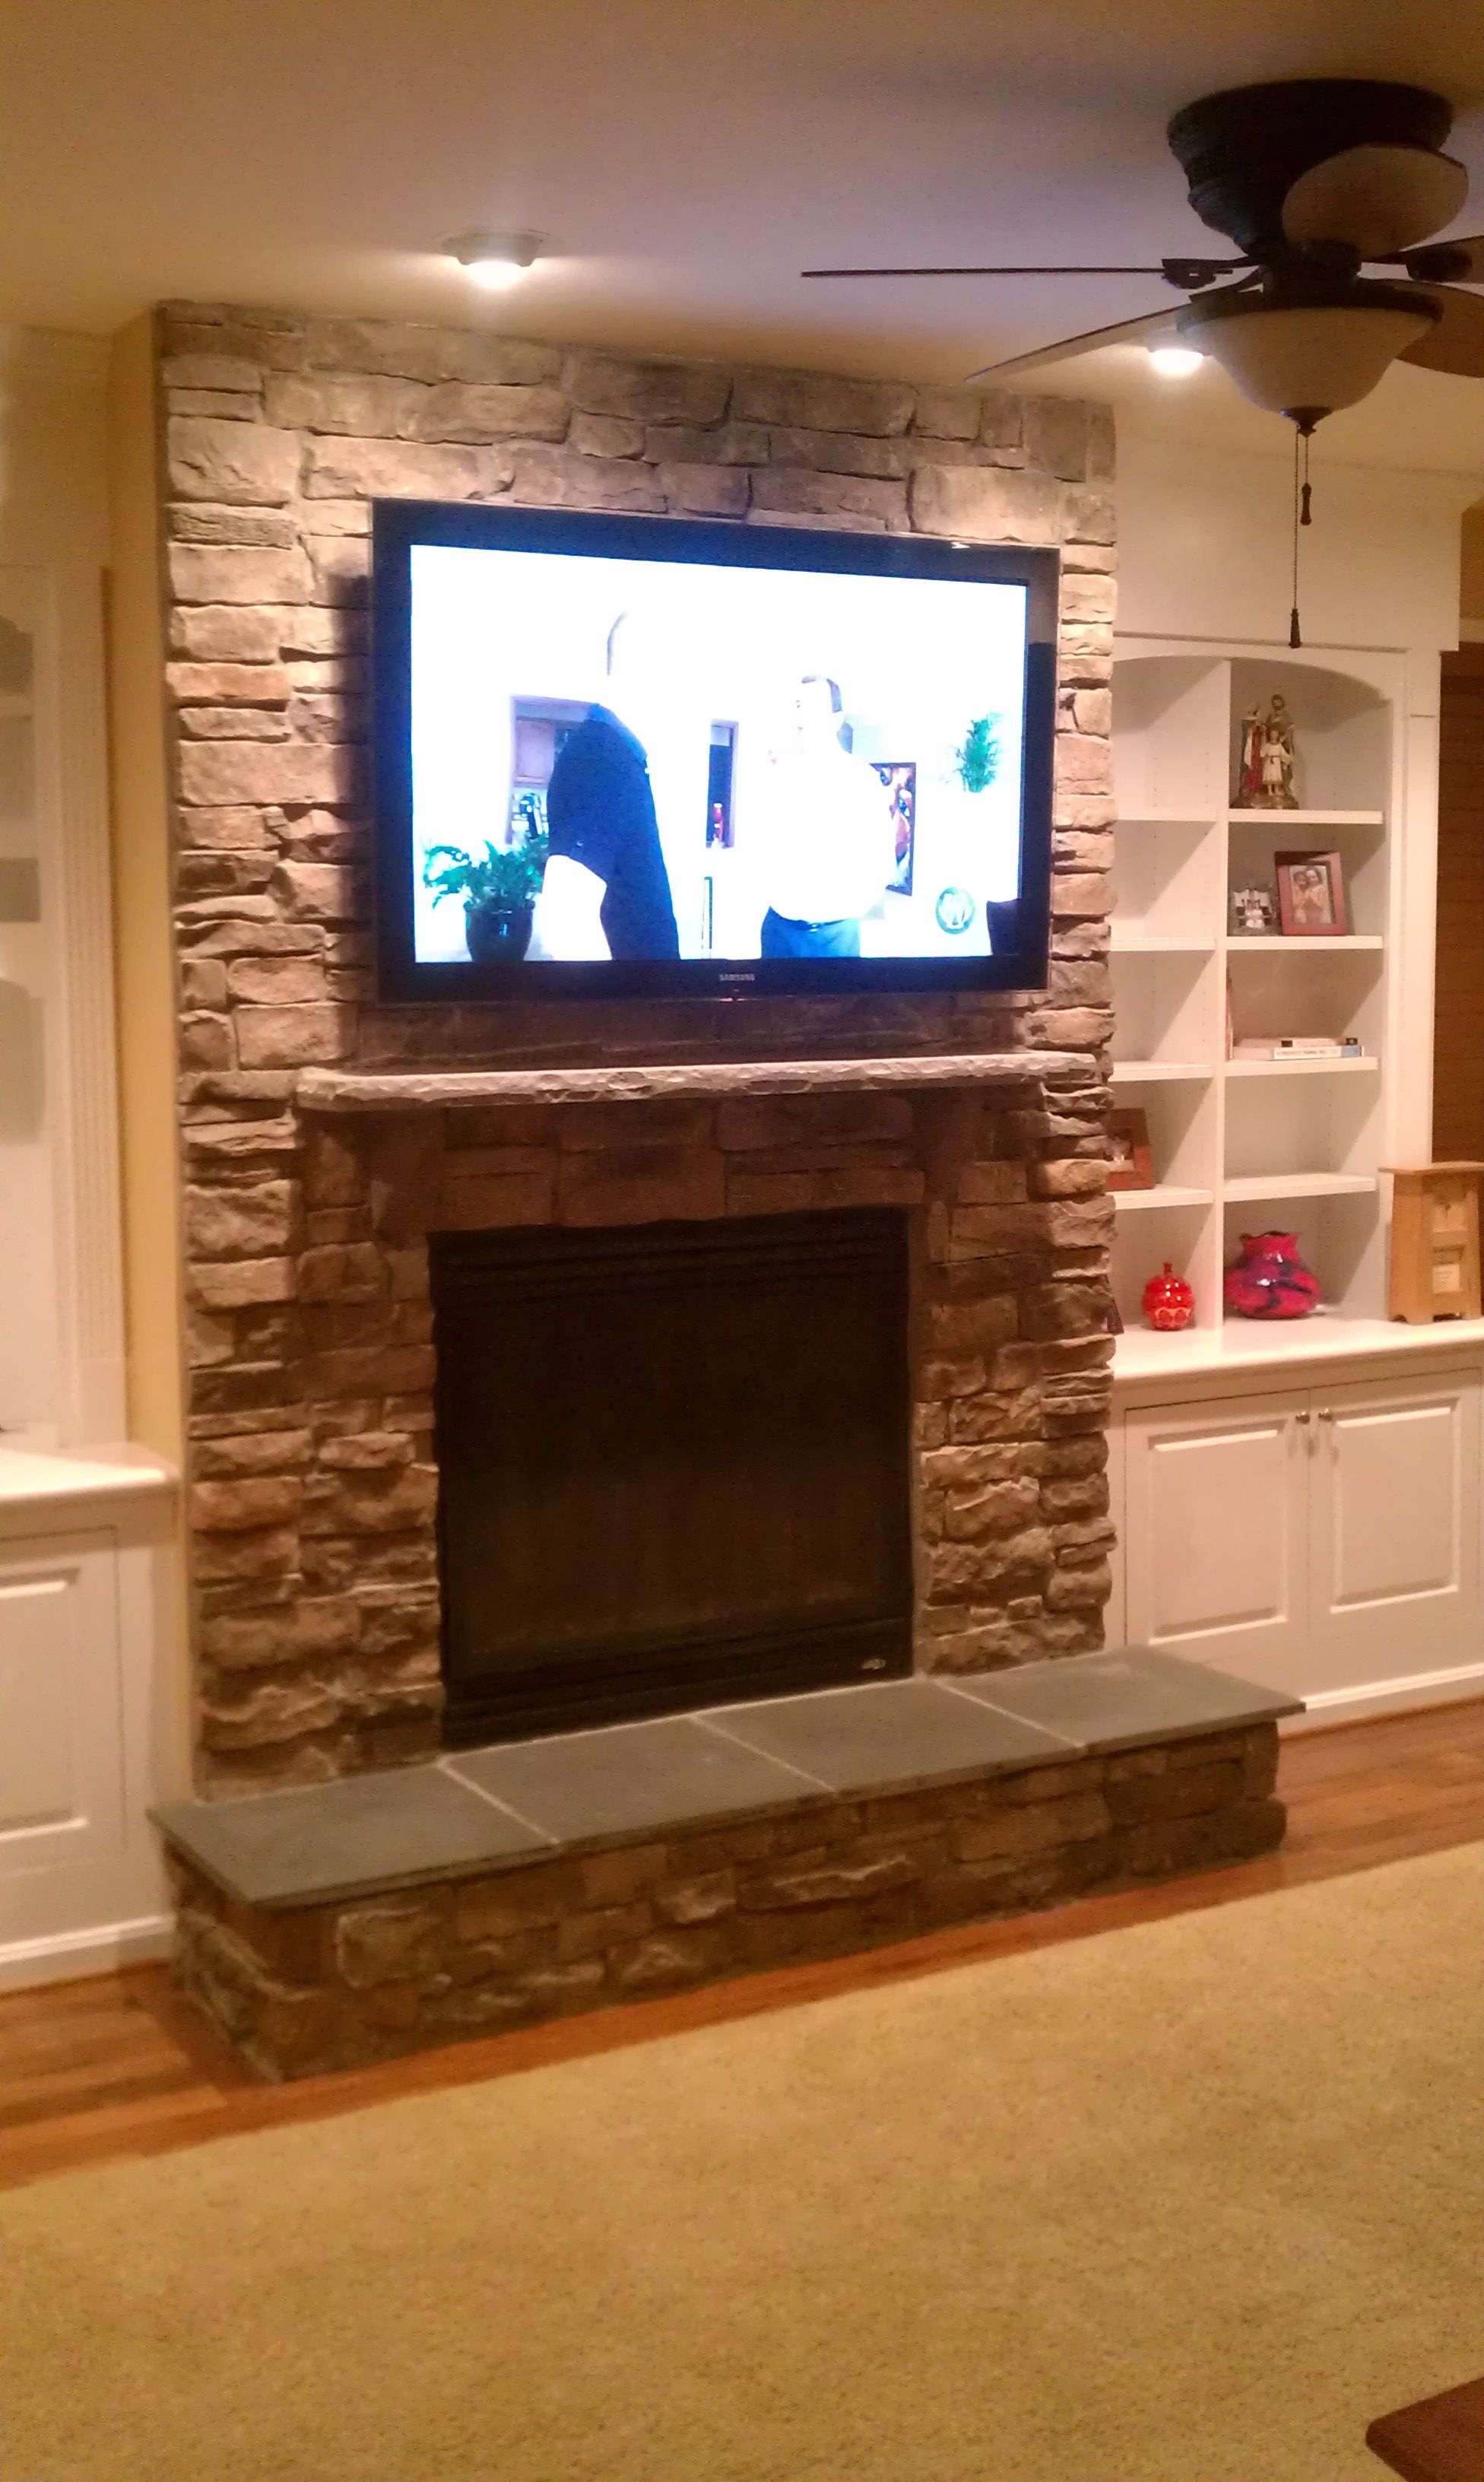 Image Result For Gas Fireplace Ideas With Tv Above Tv Above Fireplace Above Fireplace Ideas Fireplace Tv